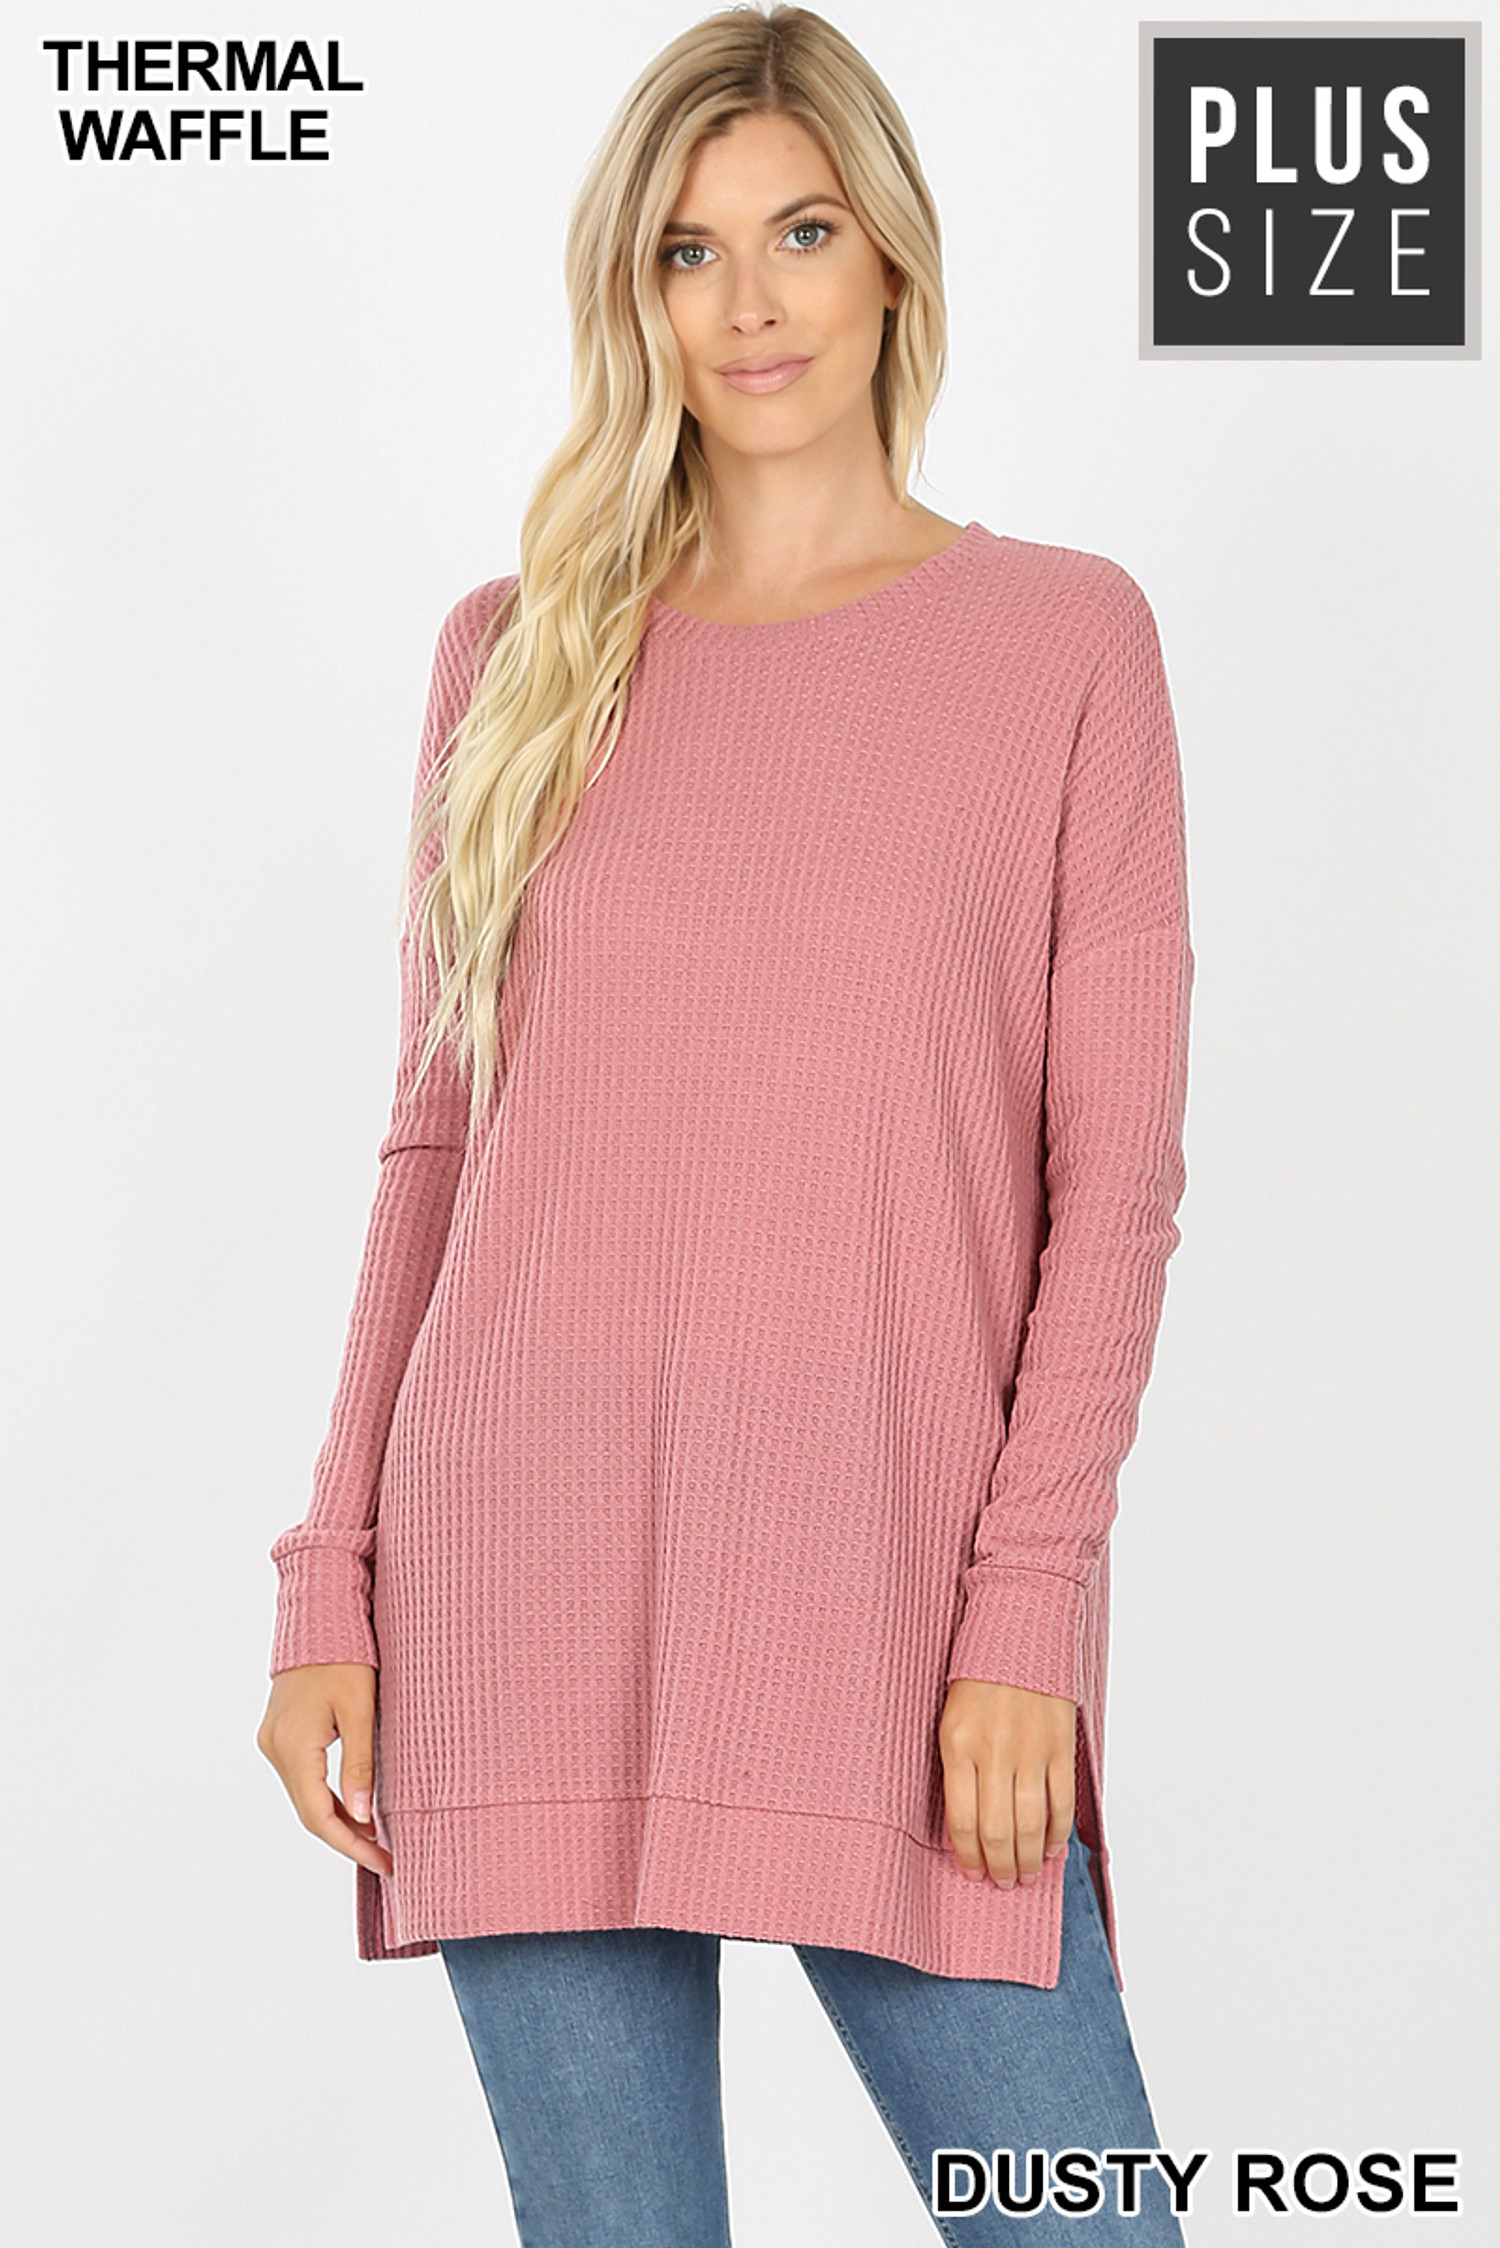 Front image of Dusty Rose Brushed Thermal Waffle Knit Round Neck Plus Size Sweater